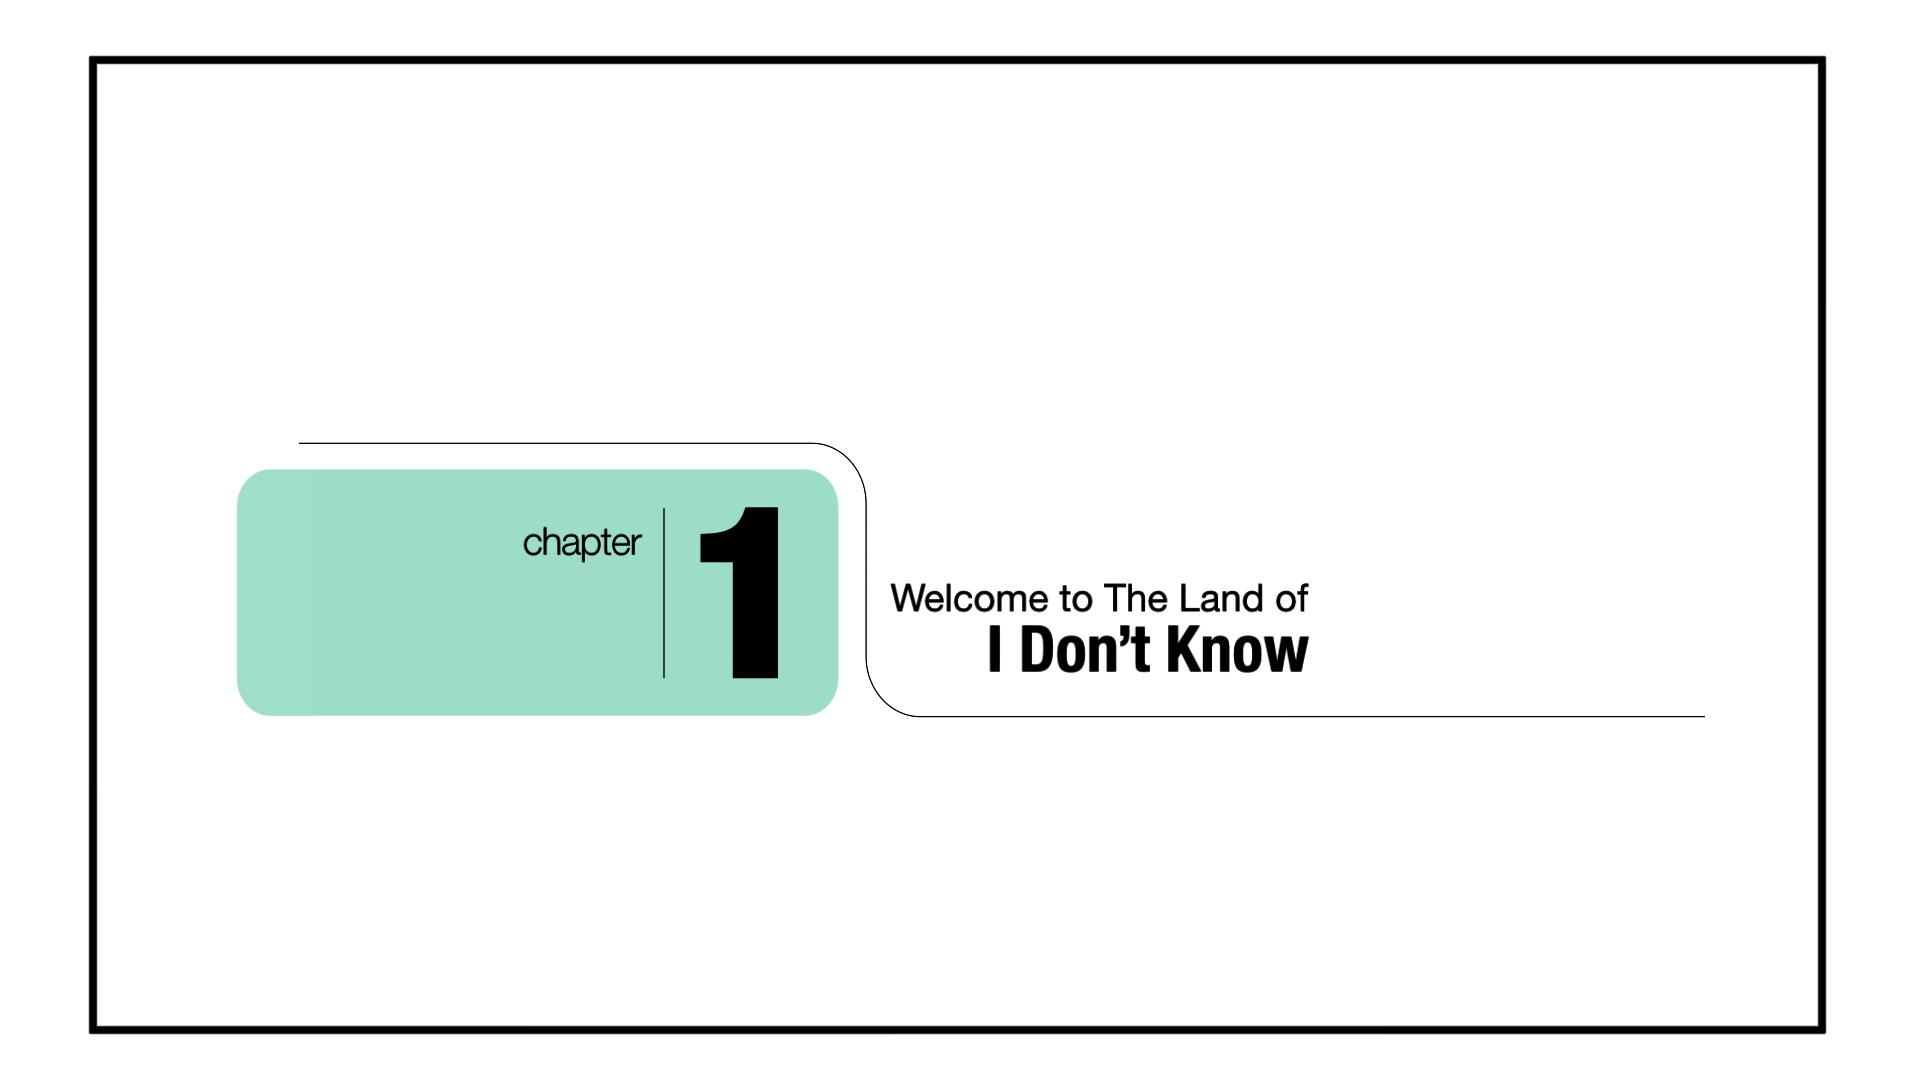 The Land of I Don't Know 2.jpg